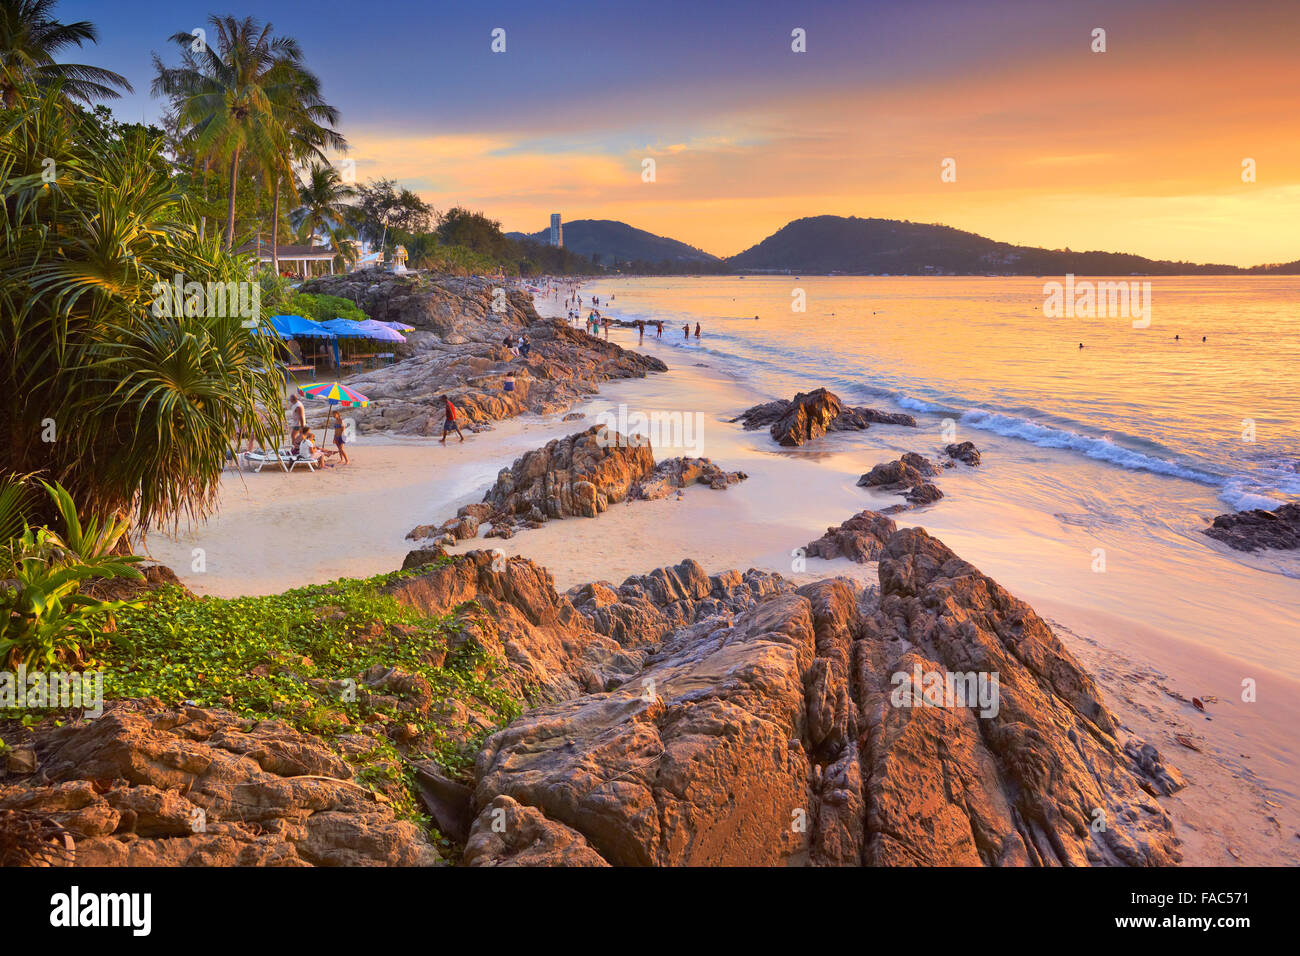 Thailand - tropical Phuket Island, Patong Beach, sunset time scenery - Stock Image